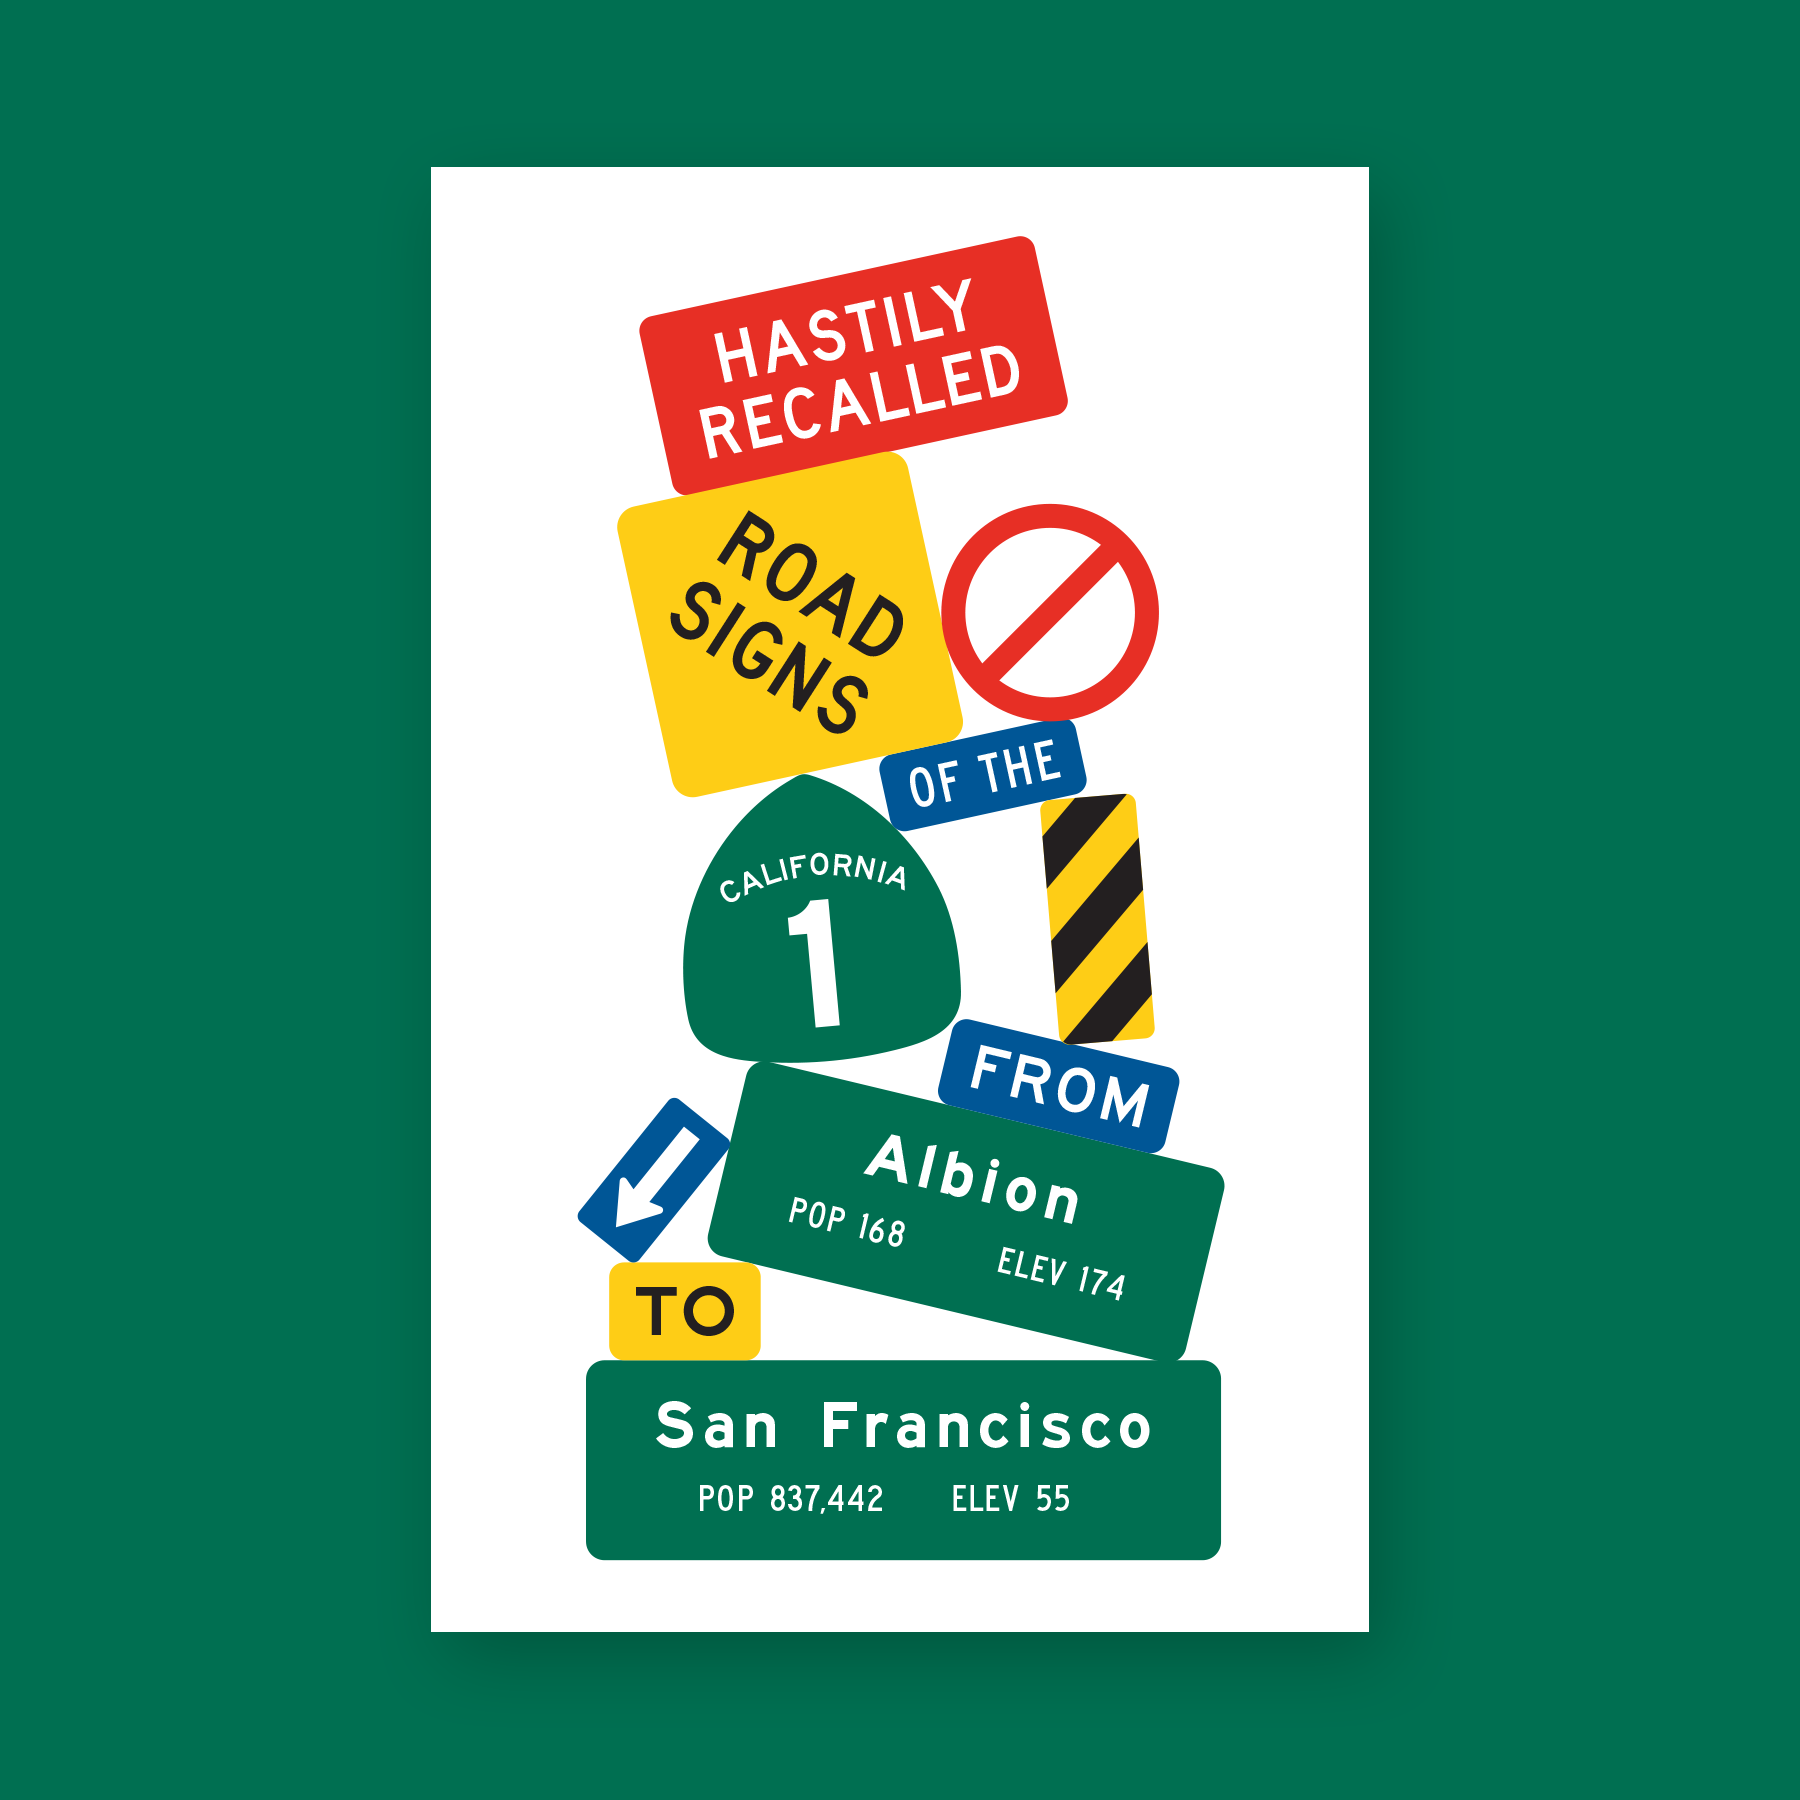 jez burrows hastily recalled road signs of the california 1 from